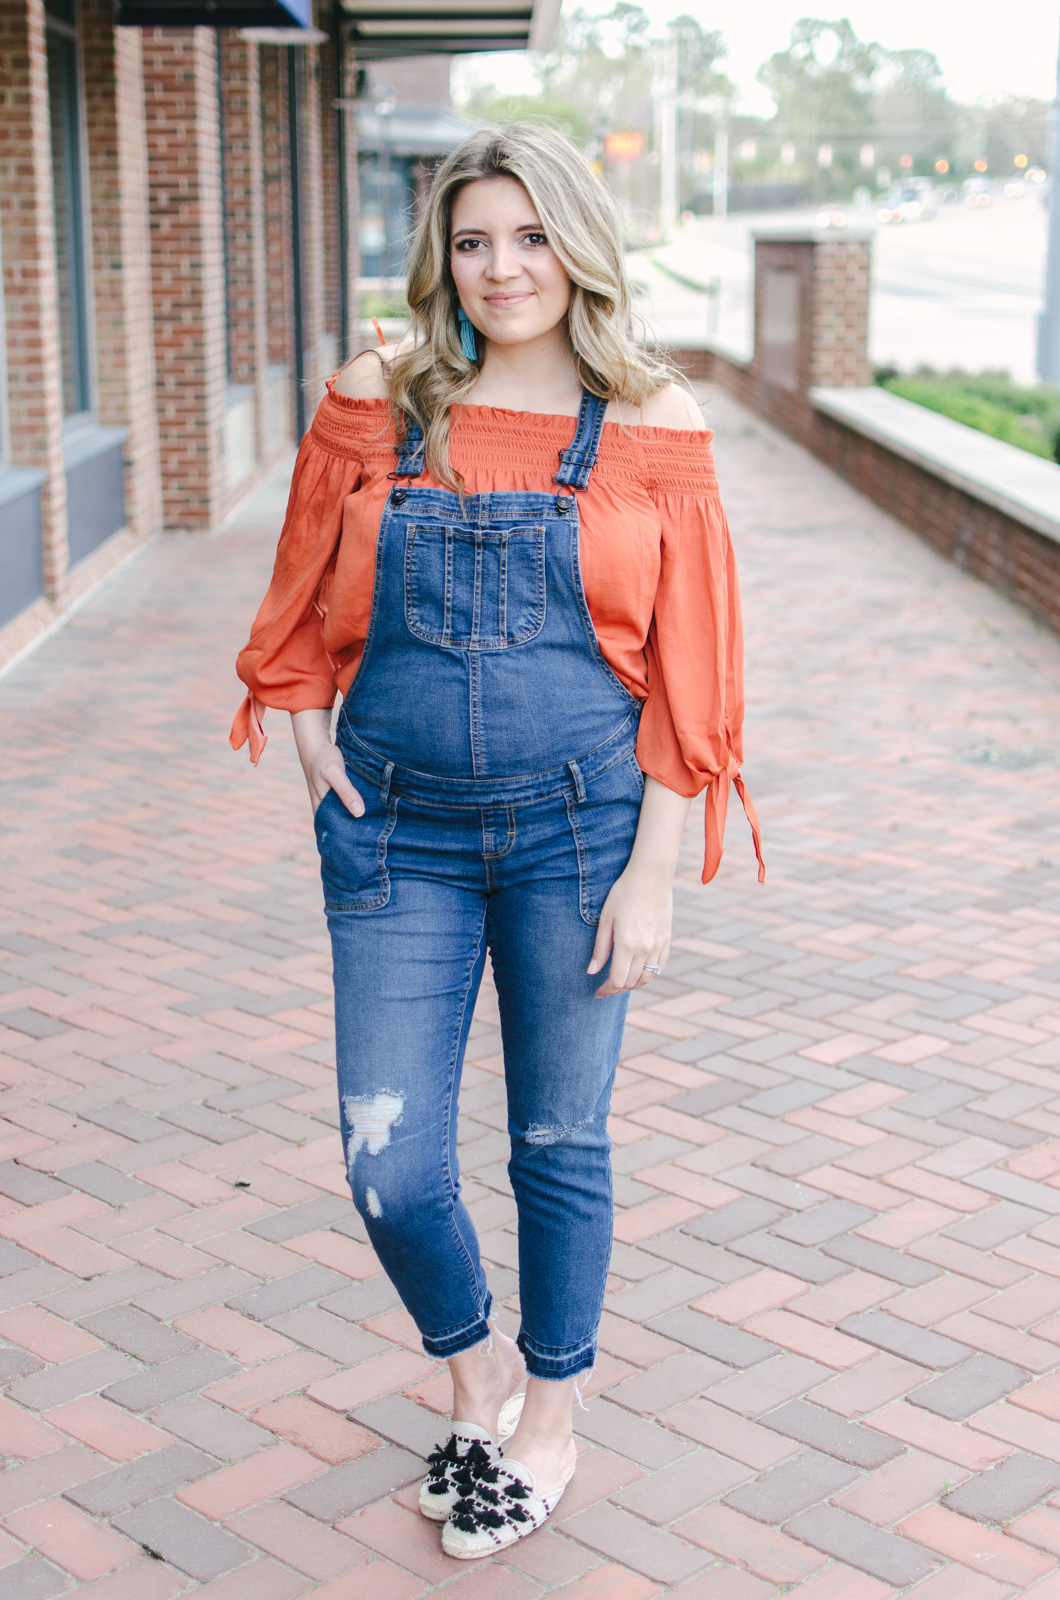 spring overalls outfit pregnancy - how wear overalls during pregnancy spring | bylaurenm.com